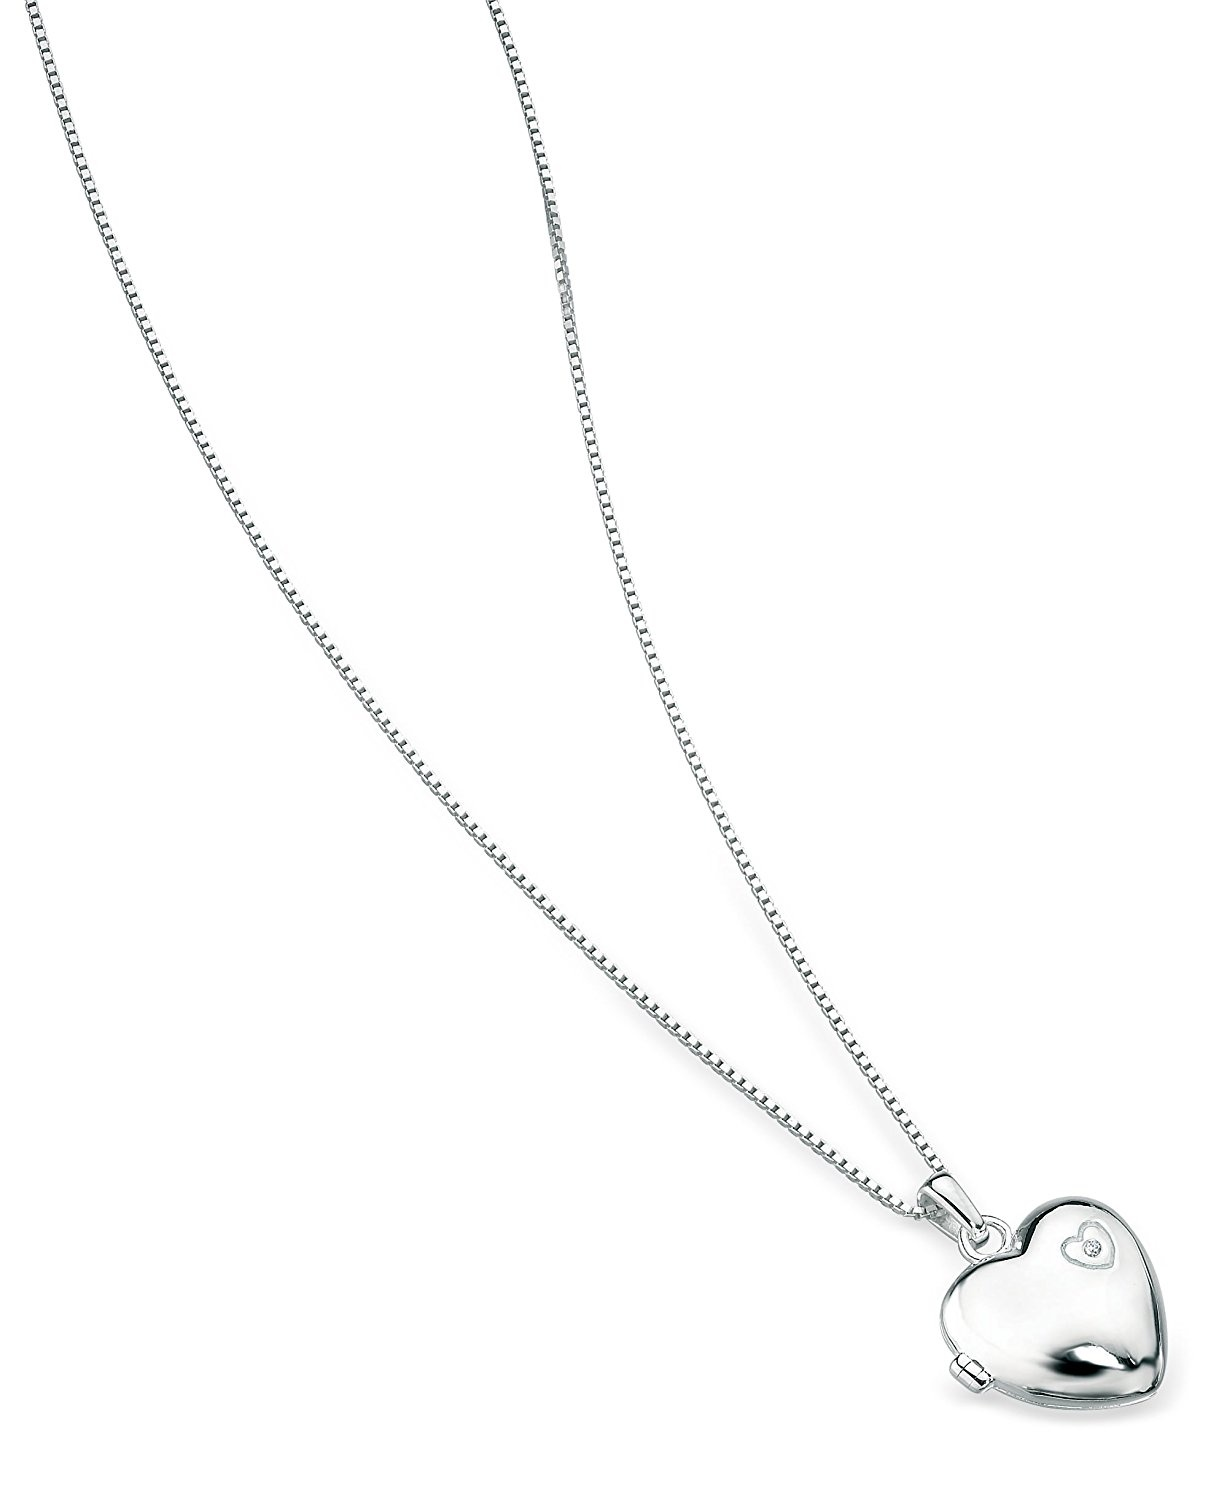 engraved children more pin lockets hand heart locket sterling information s for silver childrens necklace